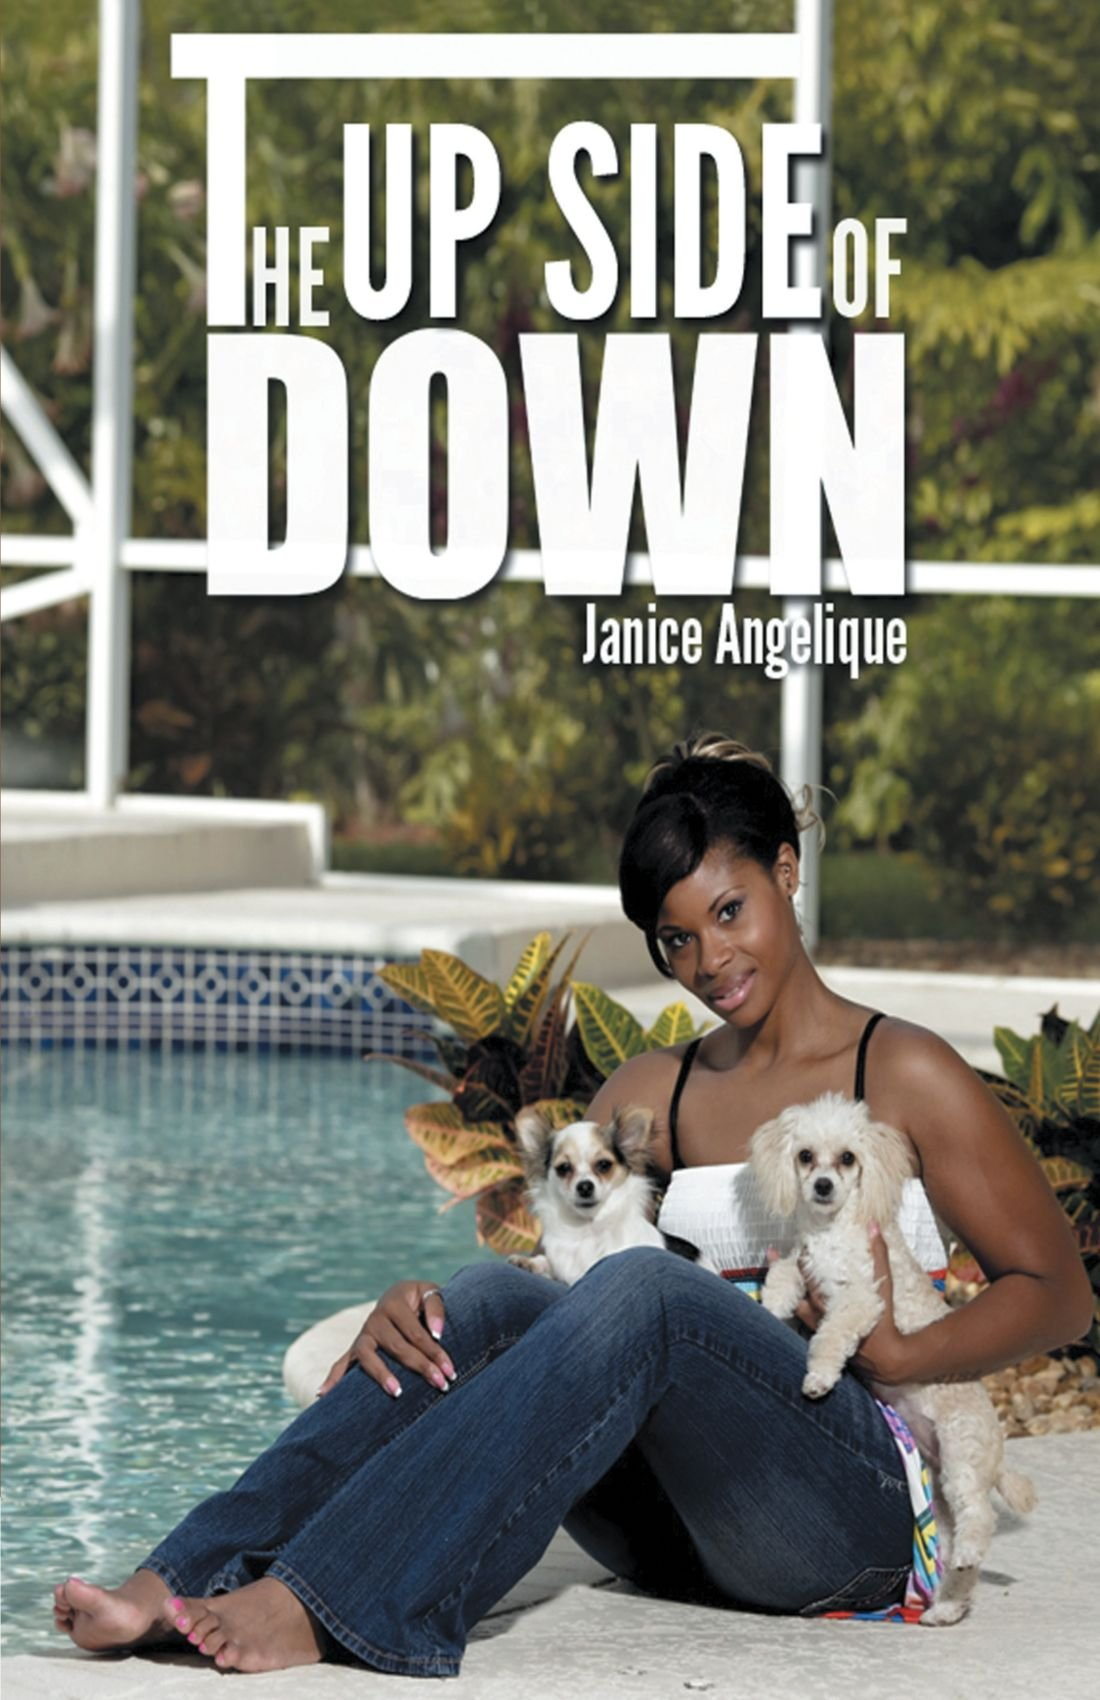 Download The Upside of Down PDF